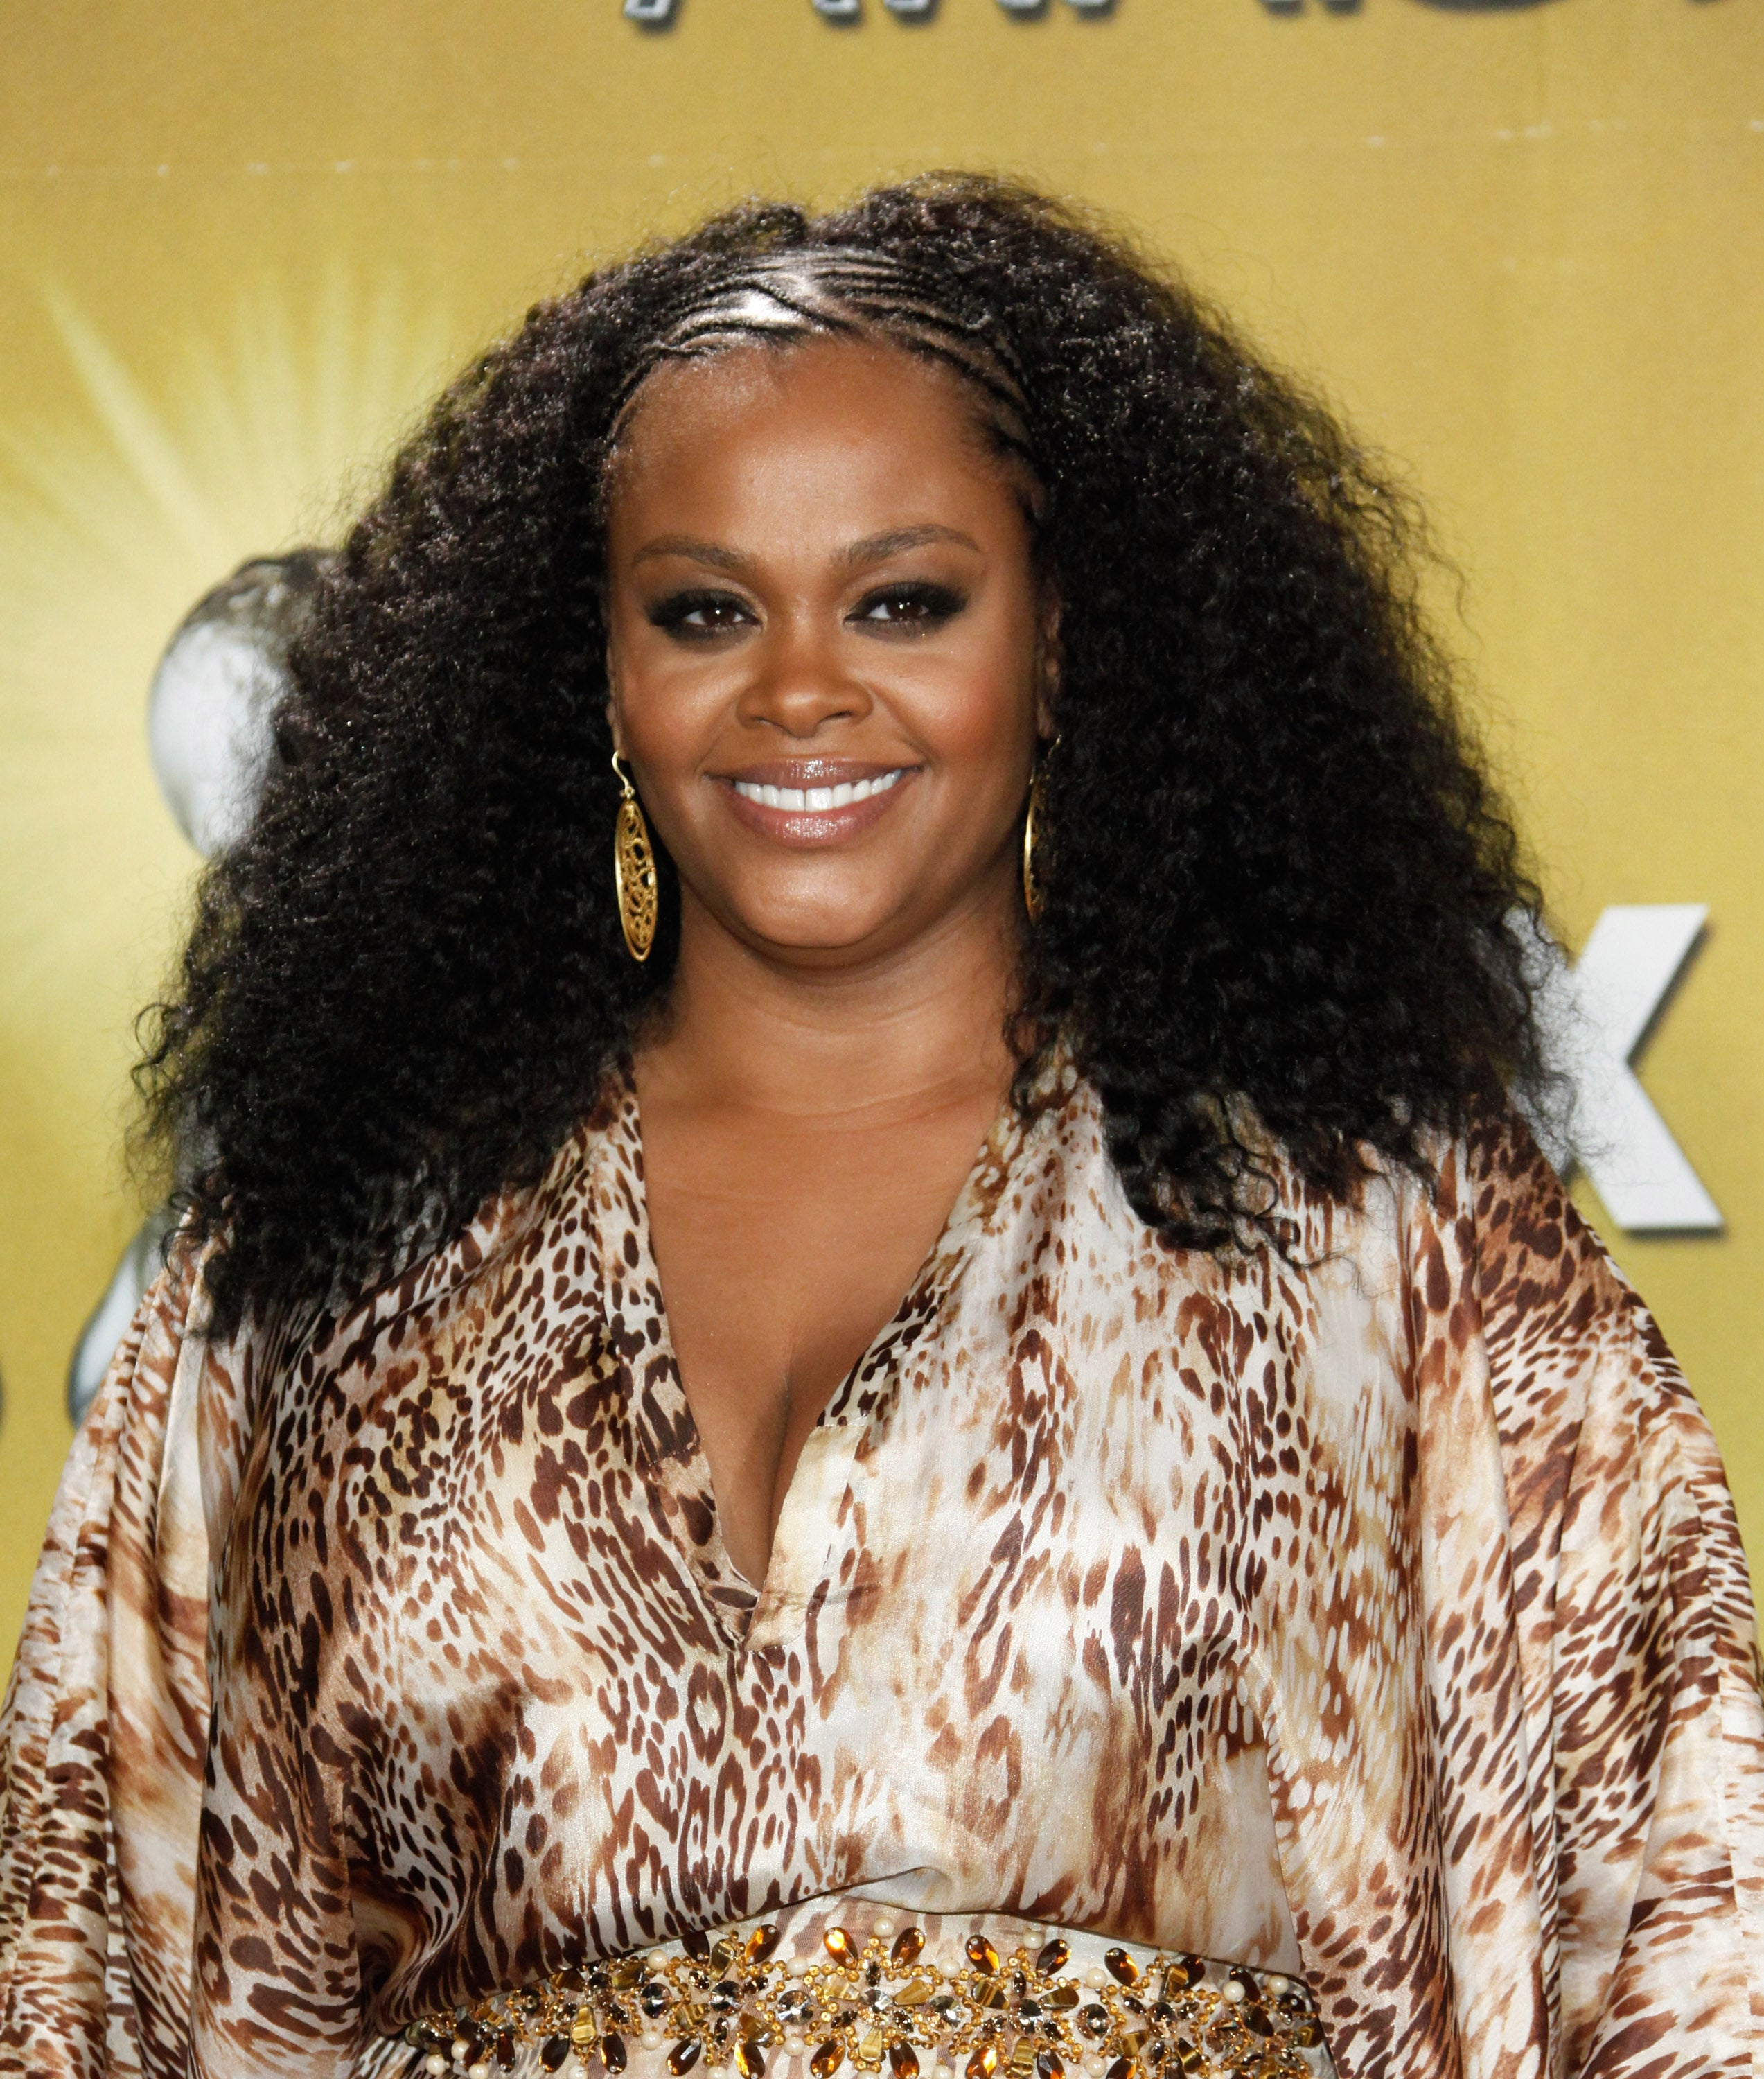 jill scott natural hair styles best hairstyles essence 8107 | GettyImages 103609867 master